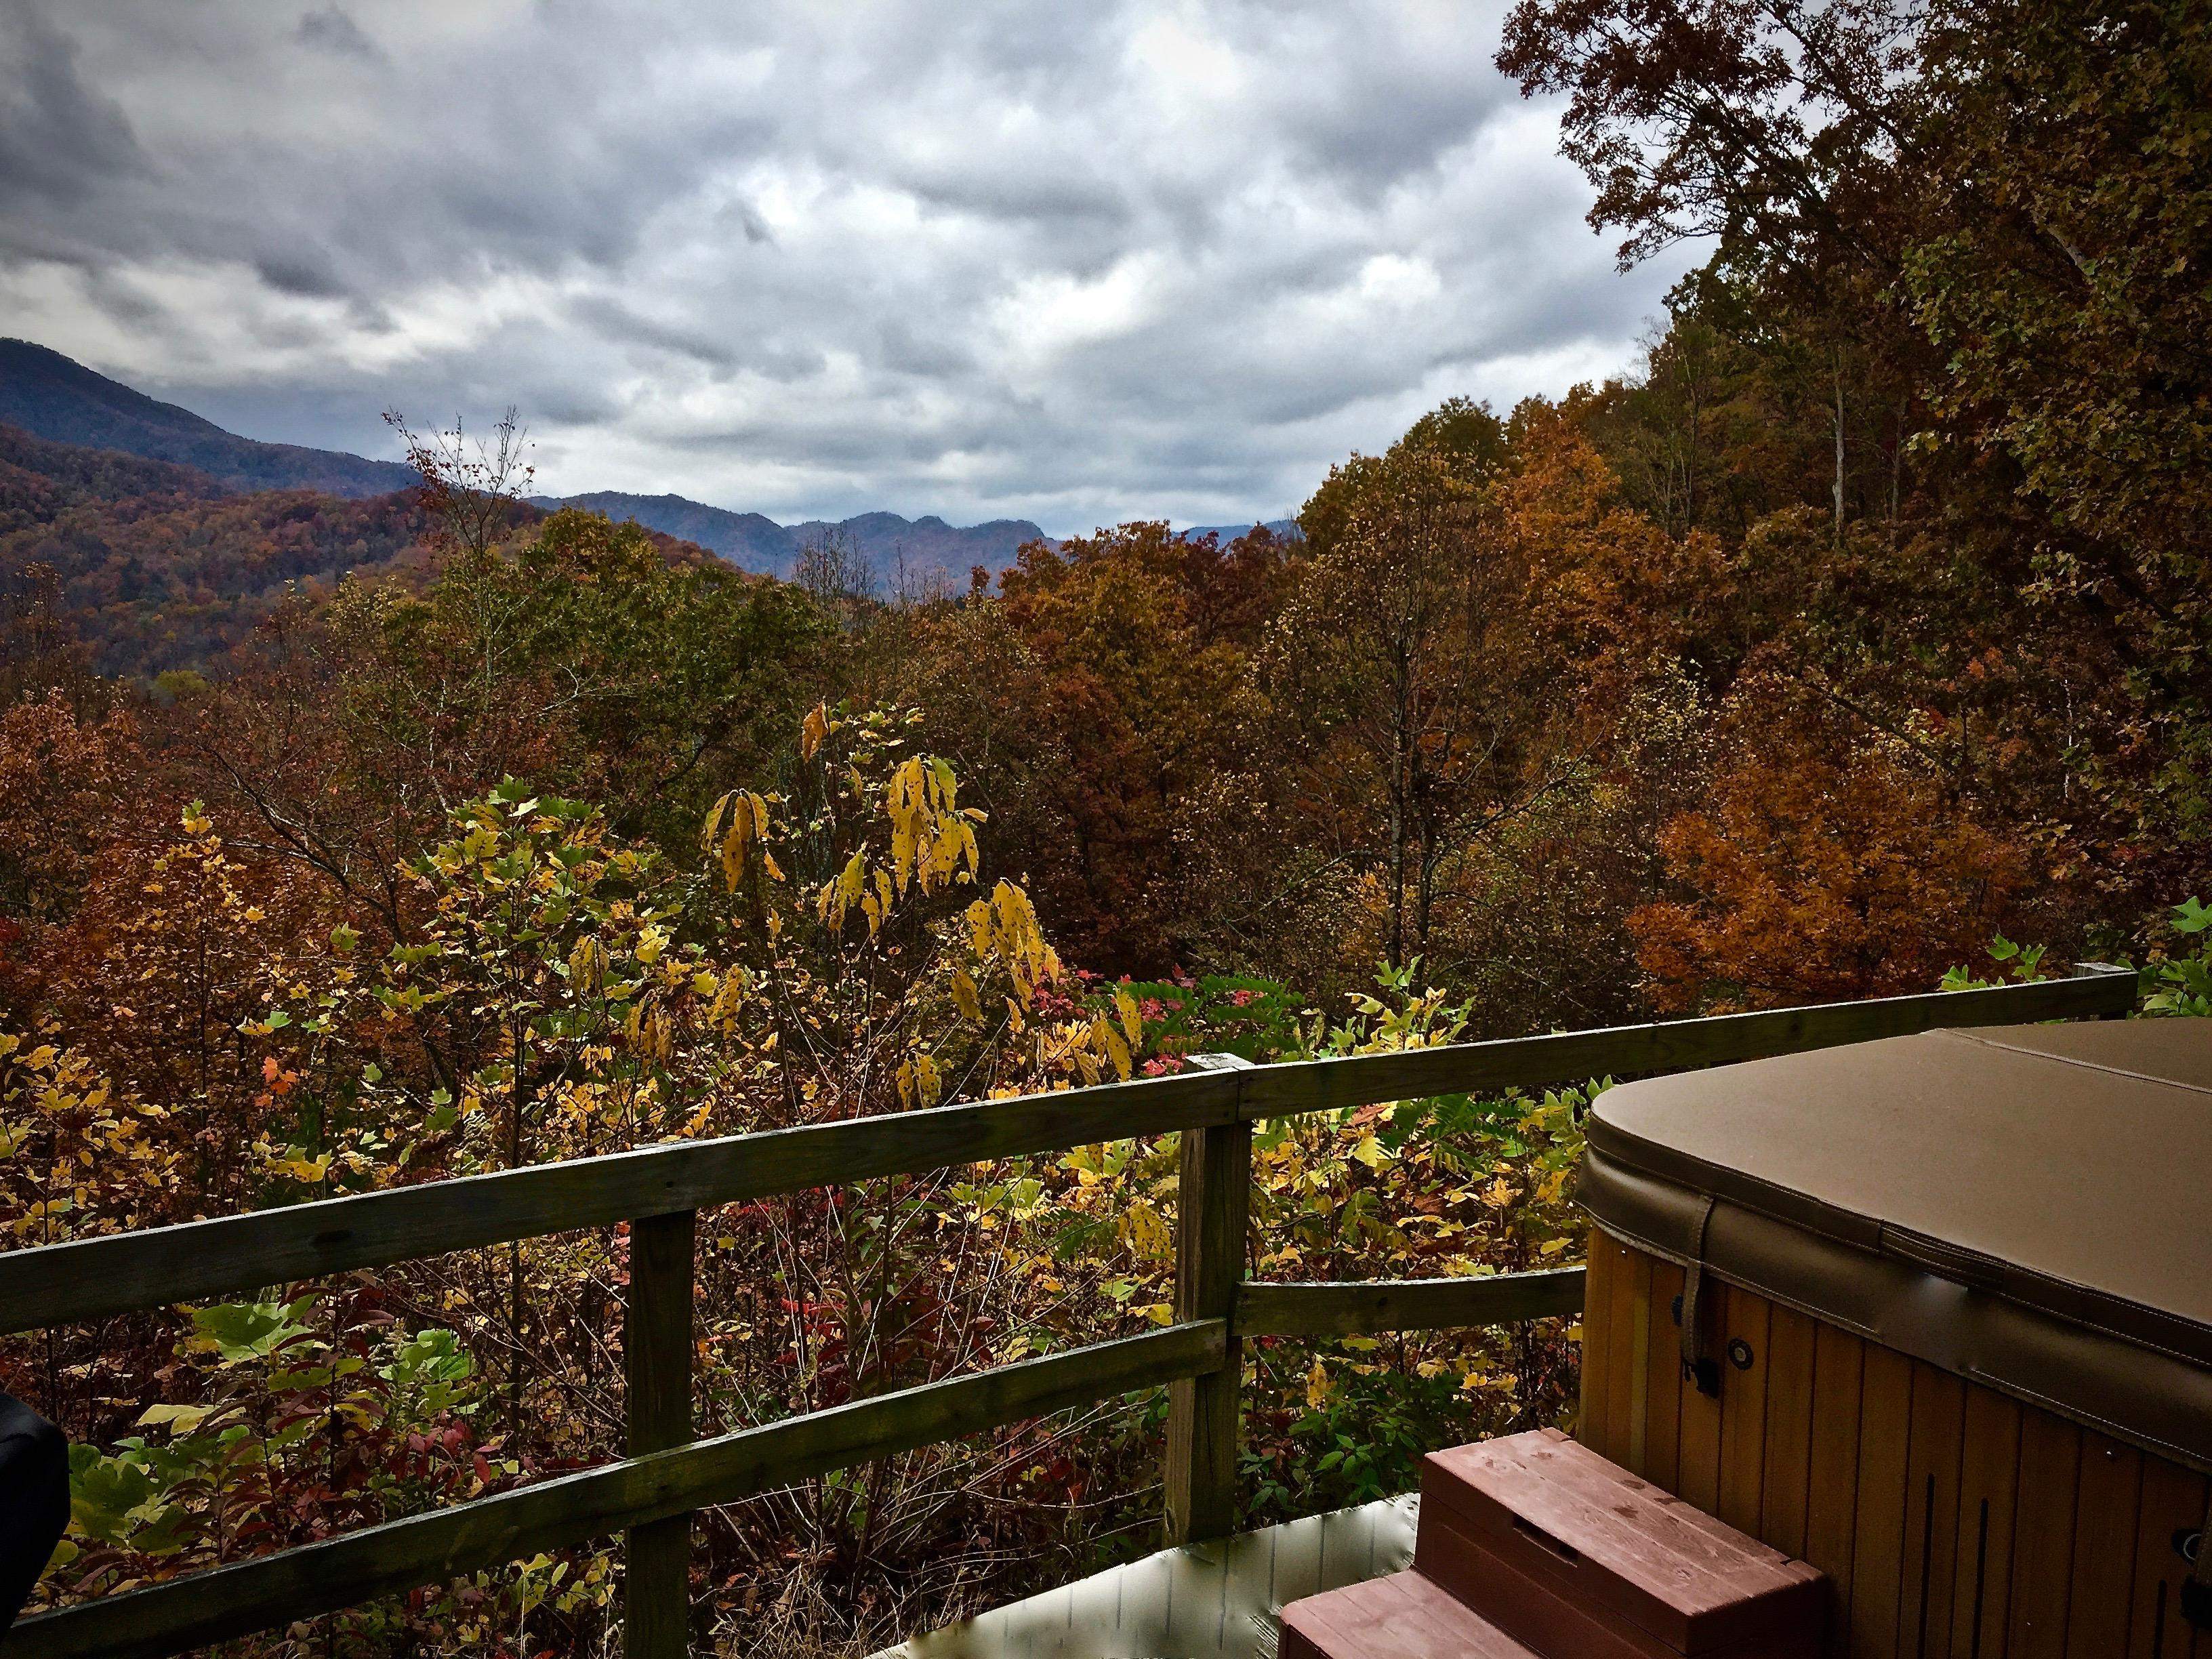 View from the Hot Tub deck on a Cloudy Day. Nature is always altering the Landscape...